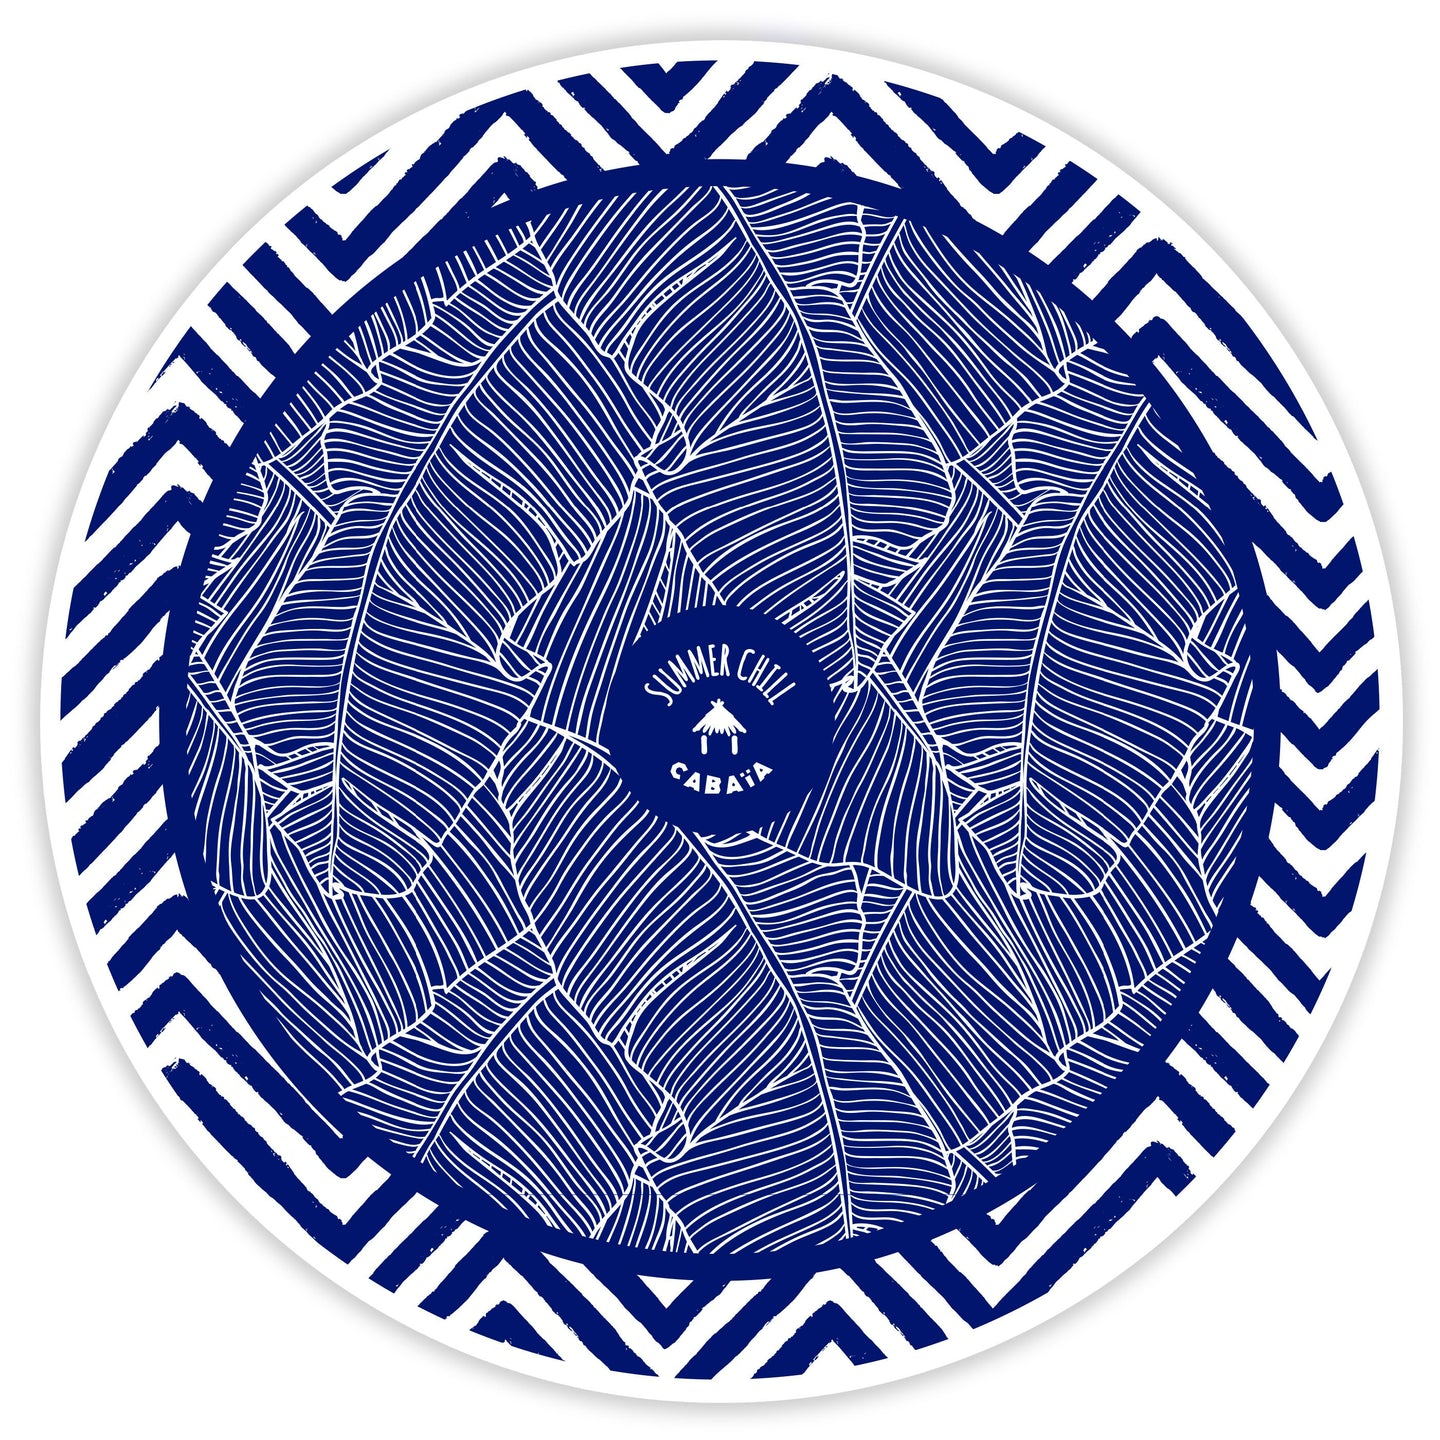 Round towel - Koh Phi Phi Ley